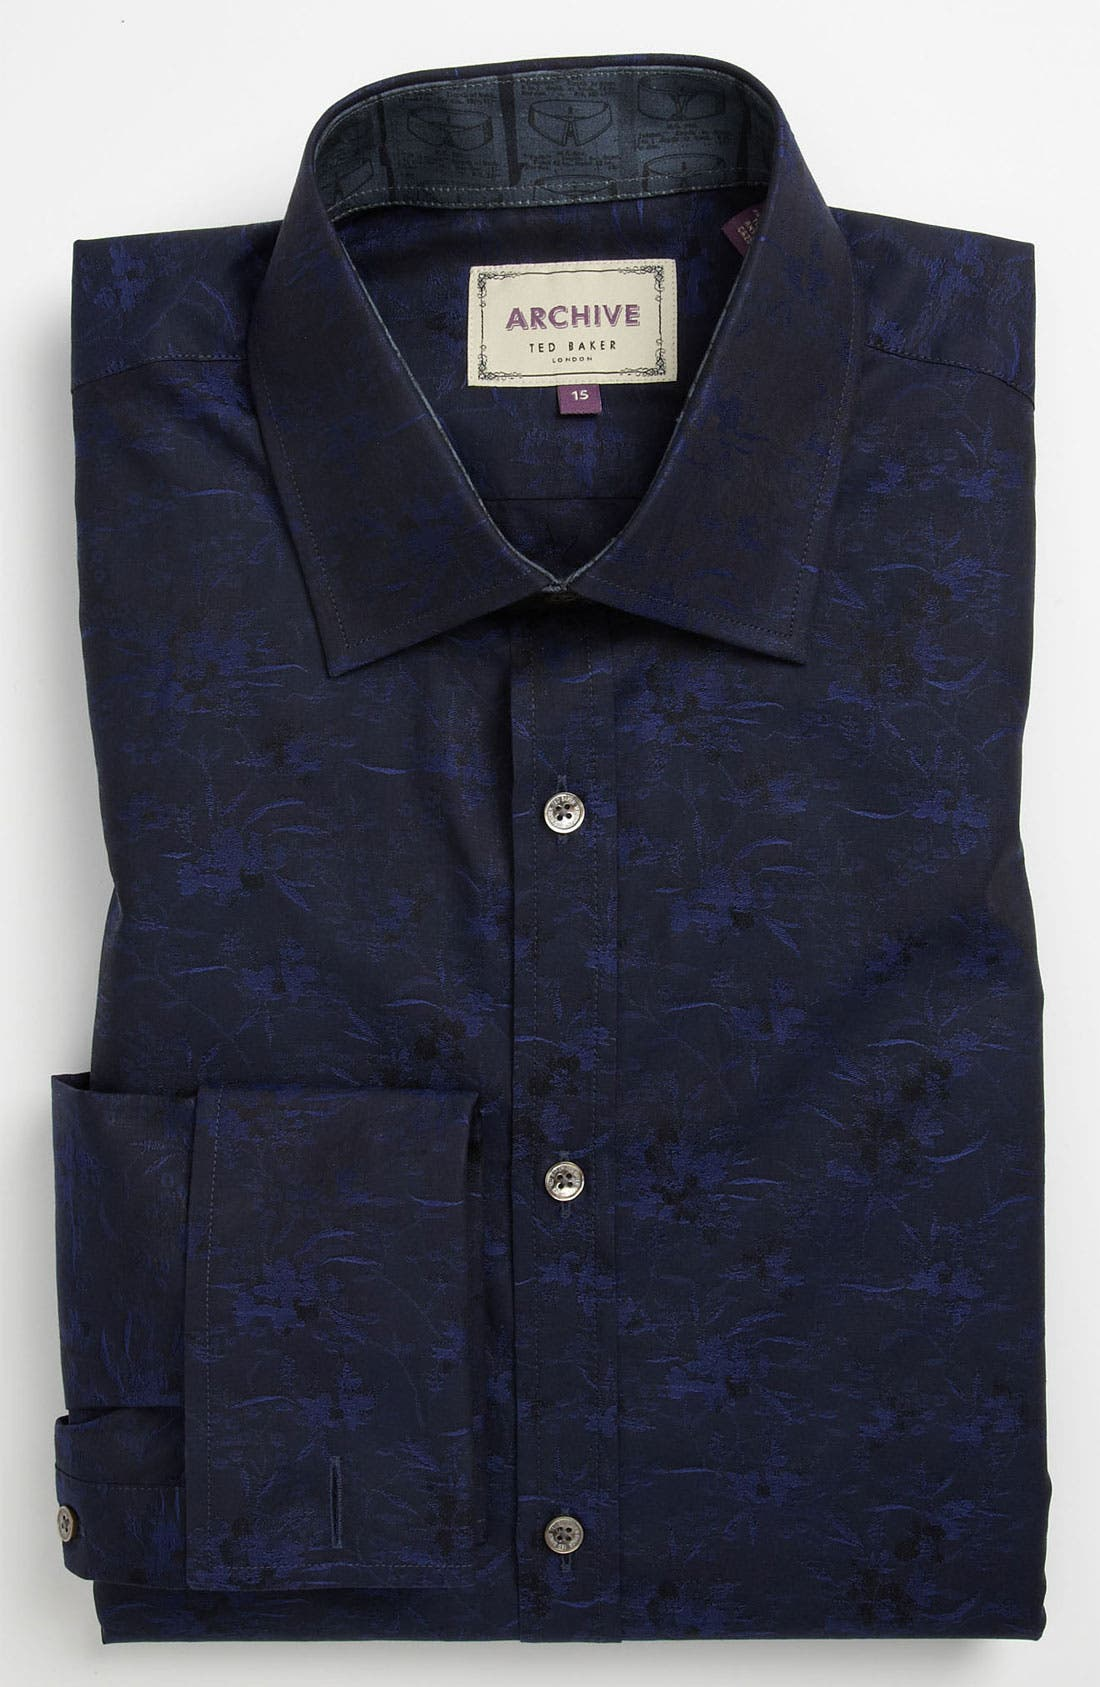 Alternate Image 1 Selected - Ted Baker London Trim Fit Dress Shirt